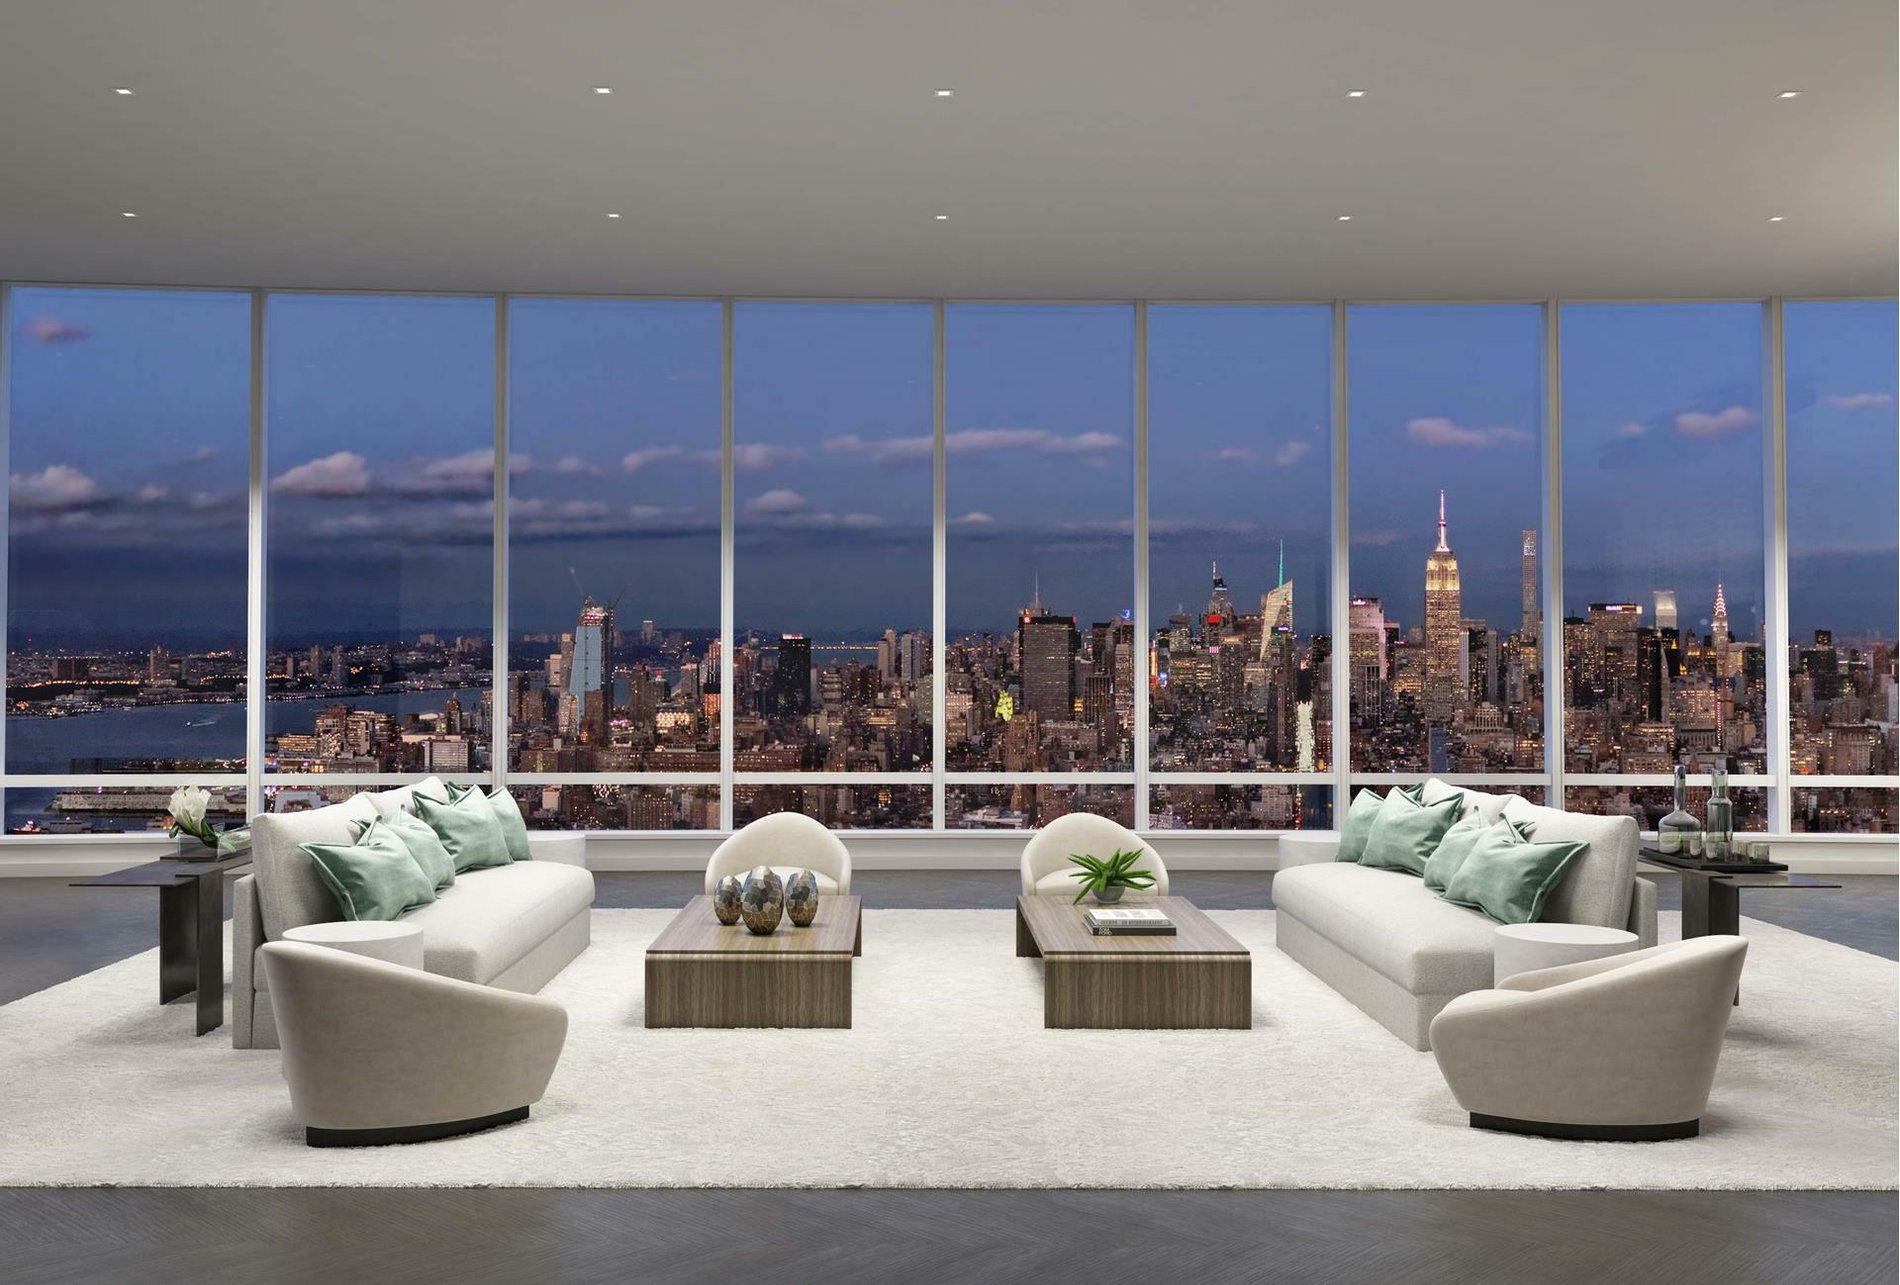 Penthouse Two $40,000,000